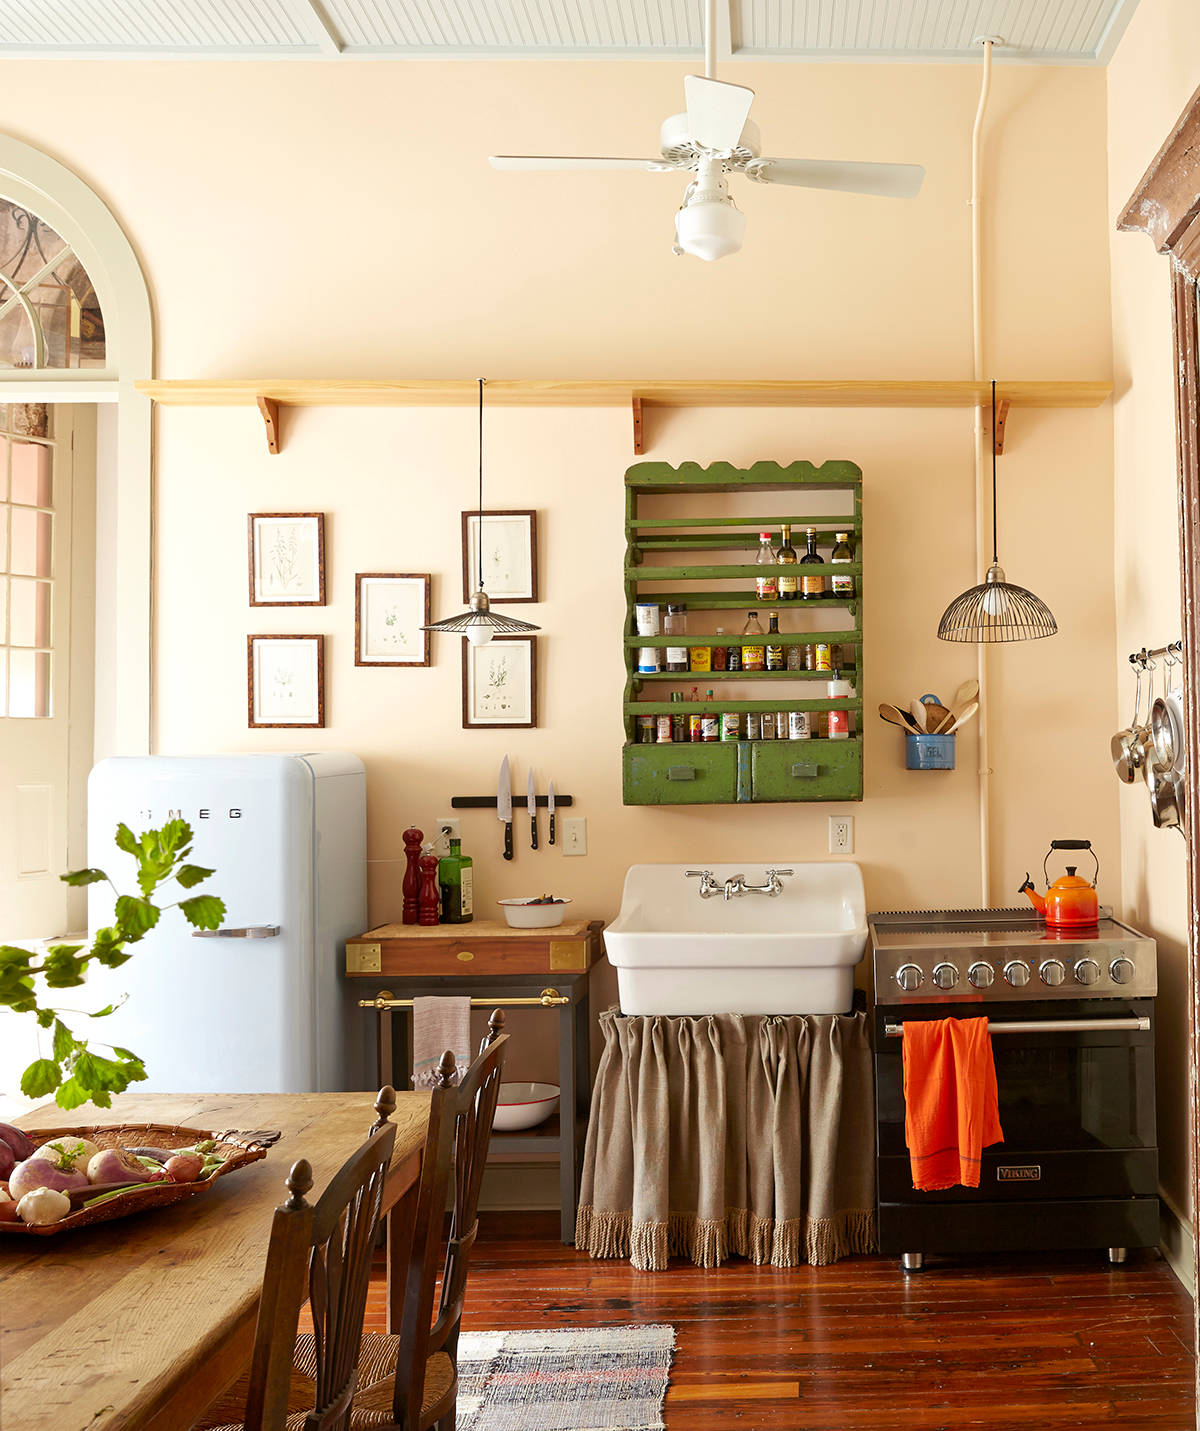 Serene-French-Country-style-coupled-with-eclectic-aesthetics-in-the-small-kitchen-64328